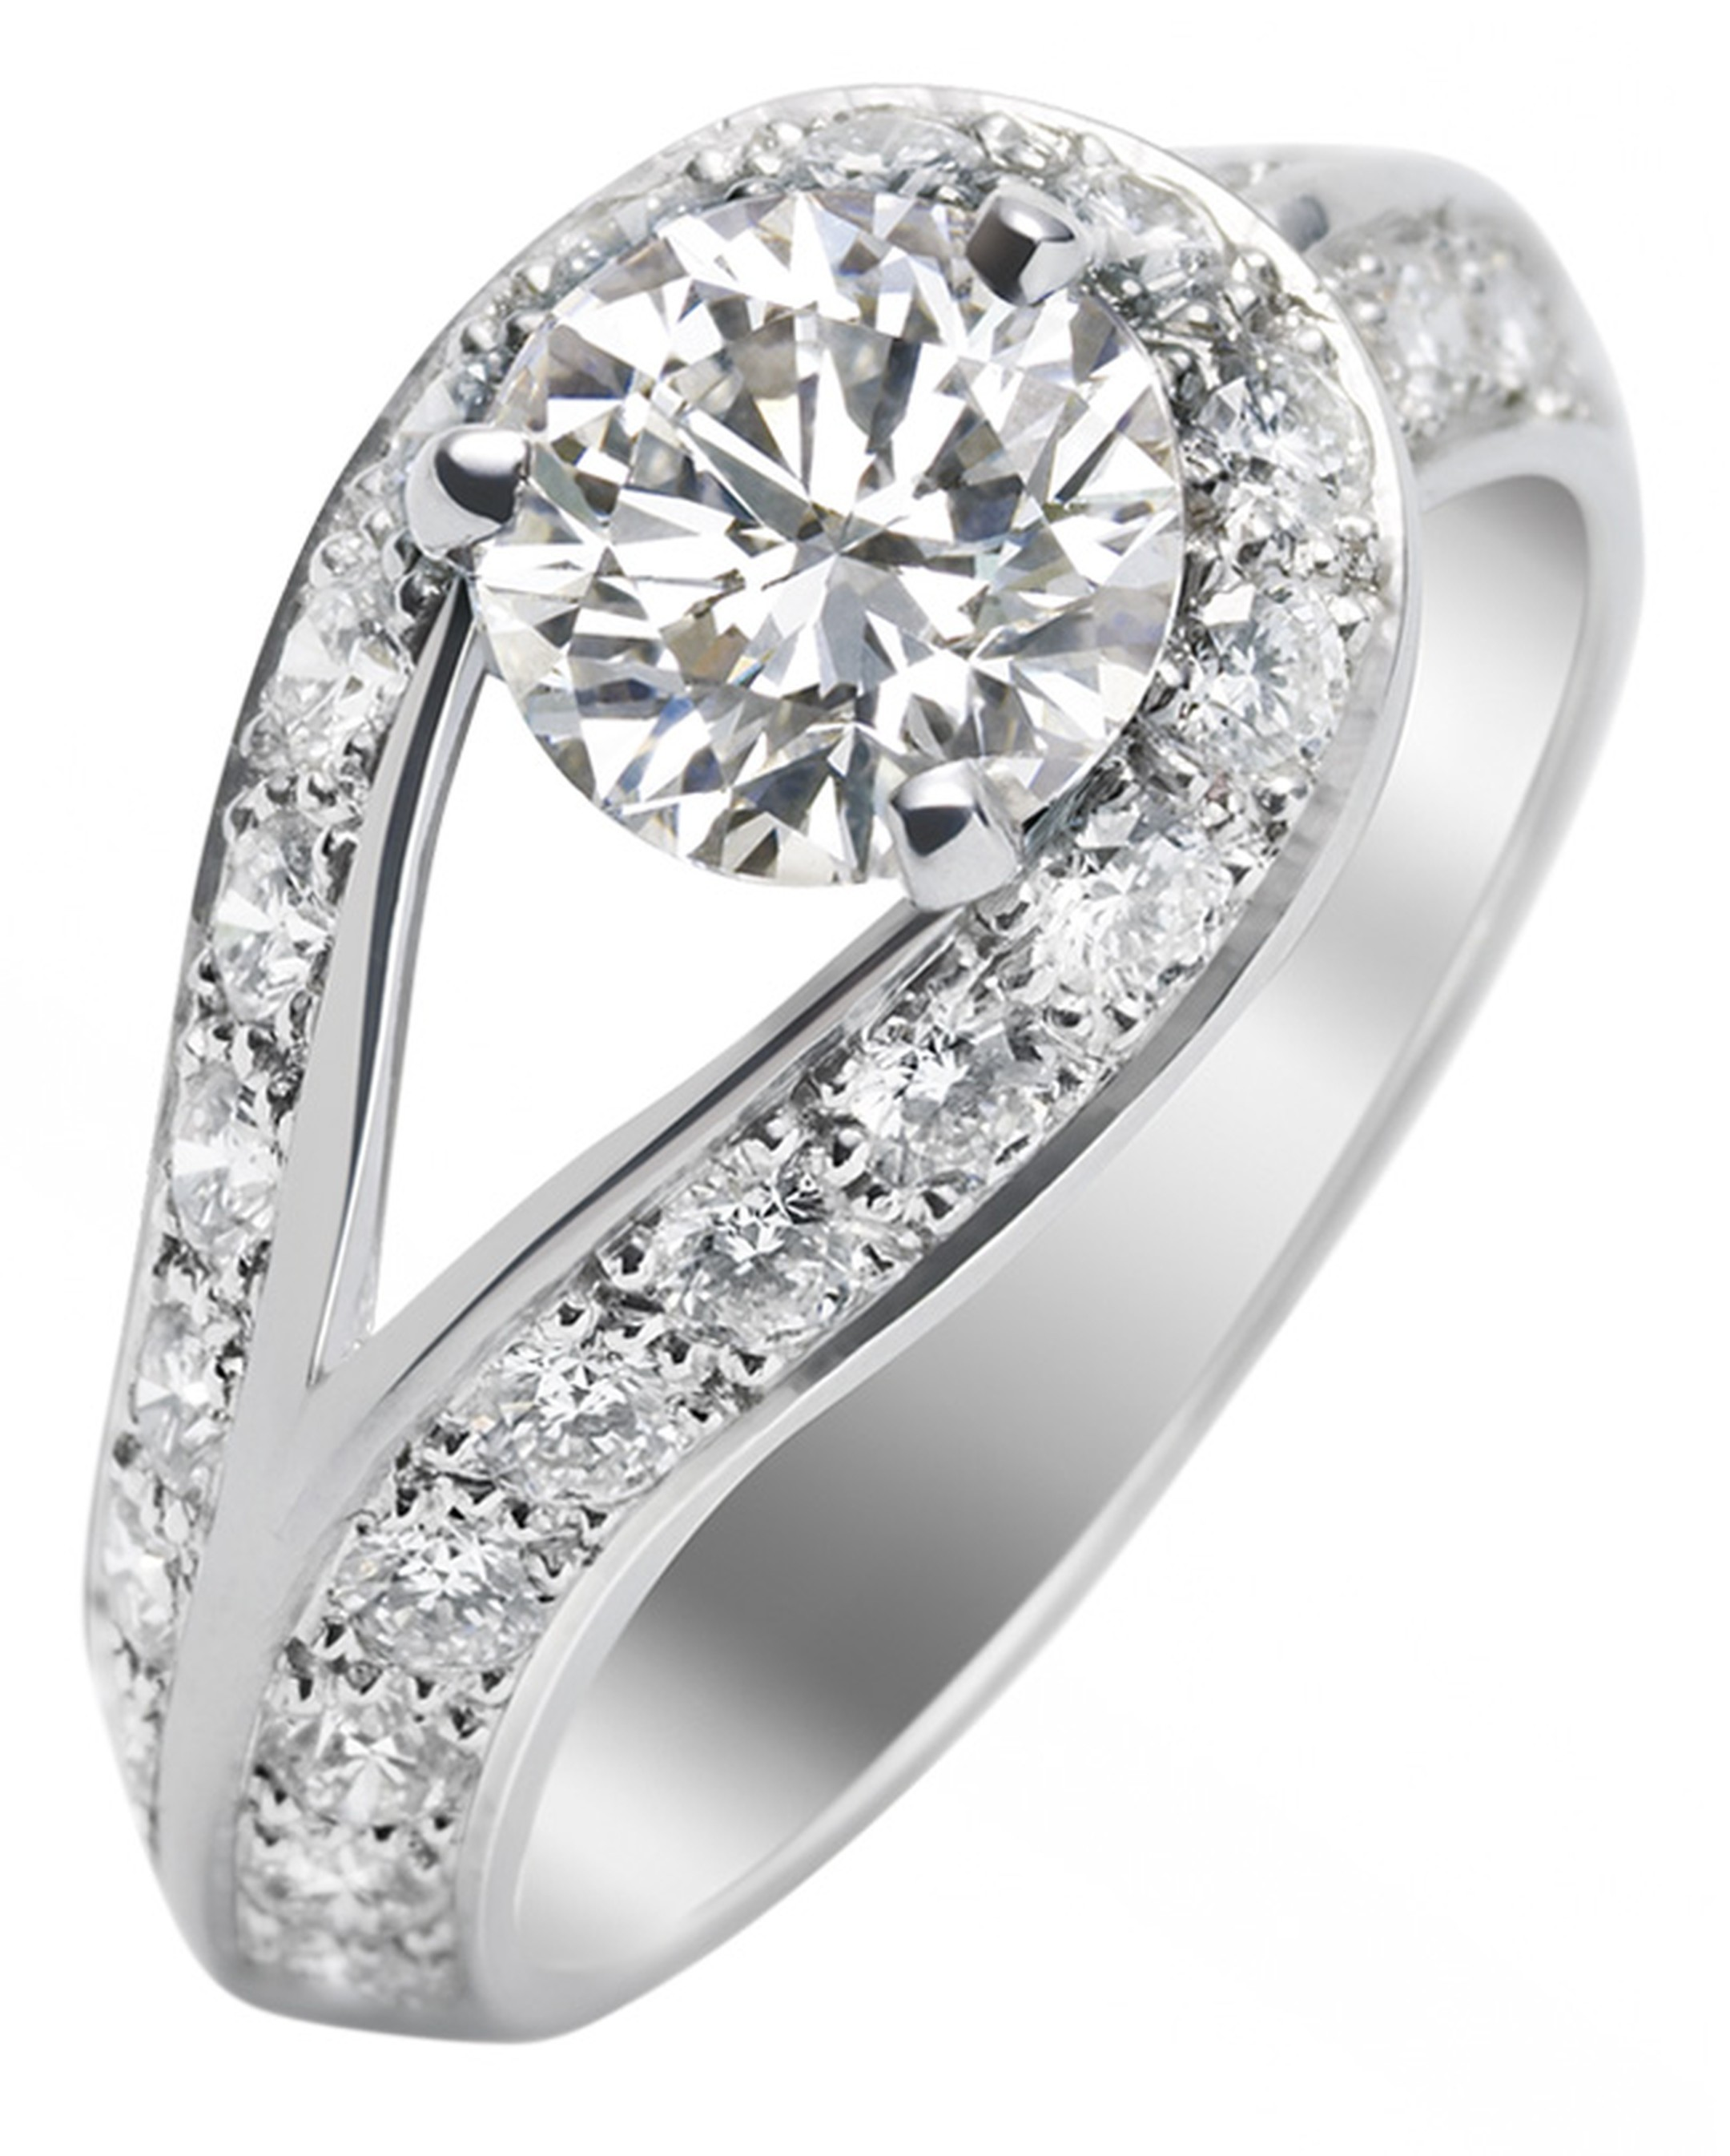 Van Cleef & Arpels Solitaire Couture engagement ring_20130619_Main